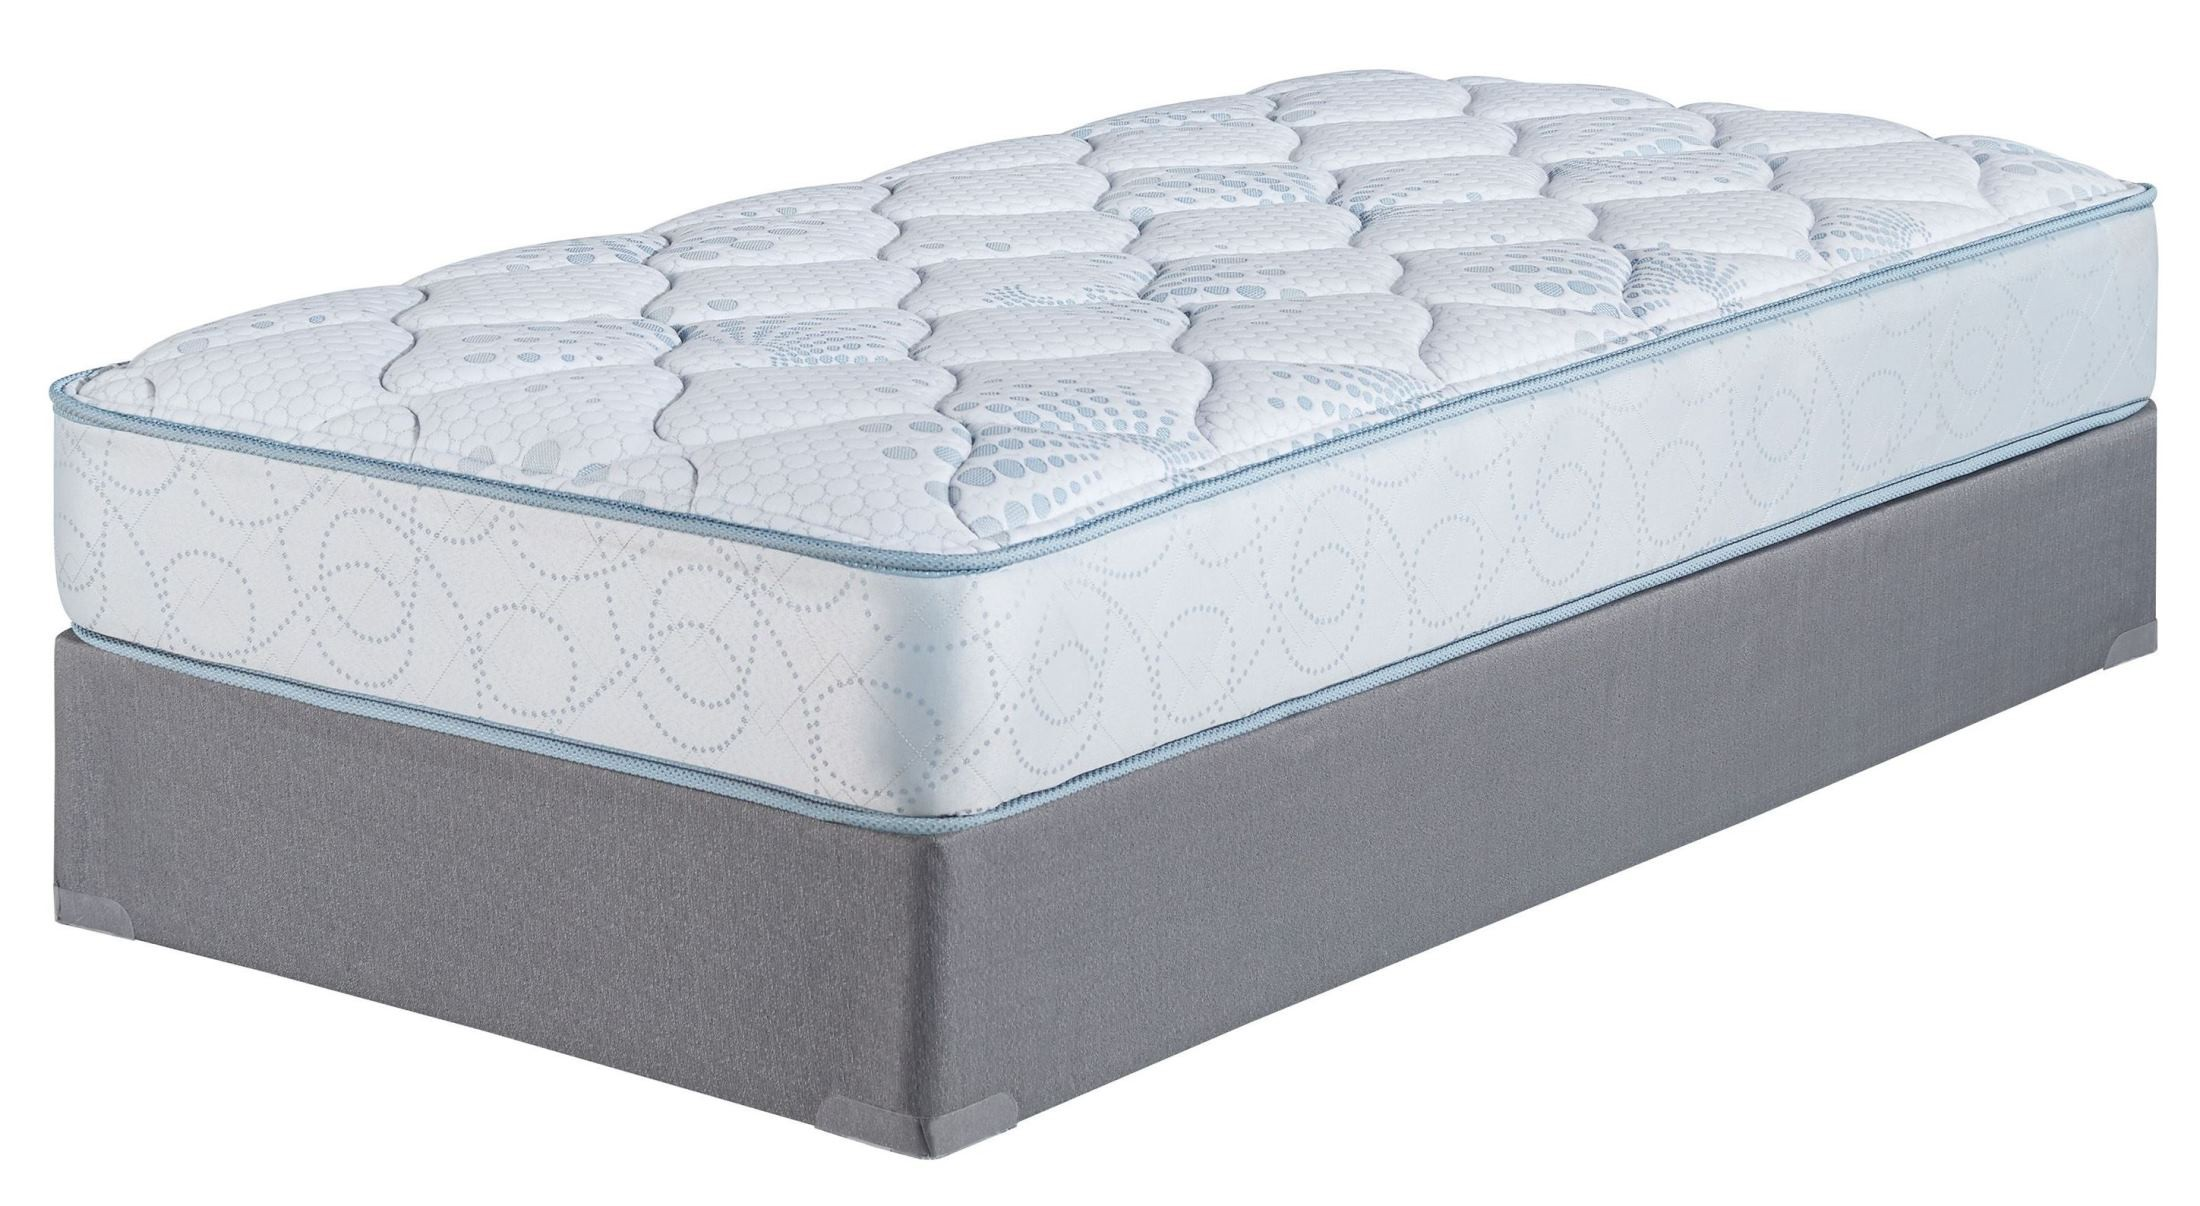 Kids Bedding Innerspring Twin Size Mattress From Ashley